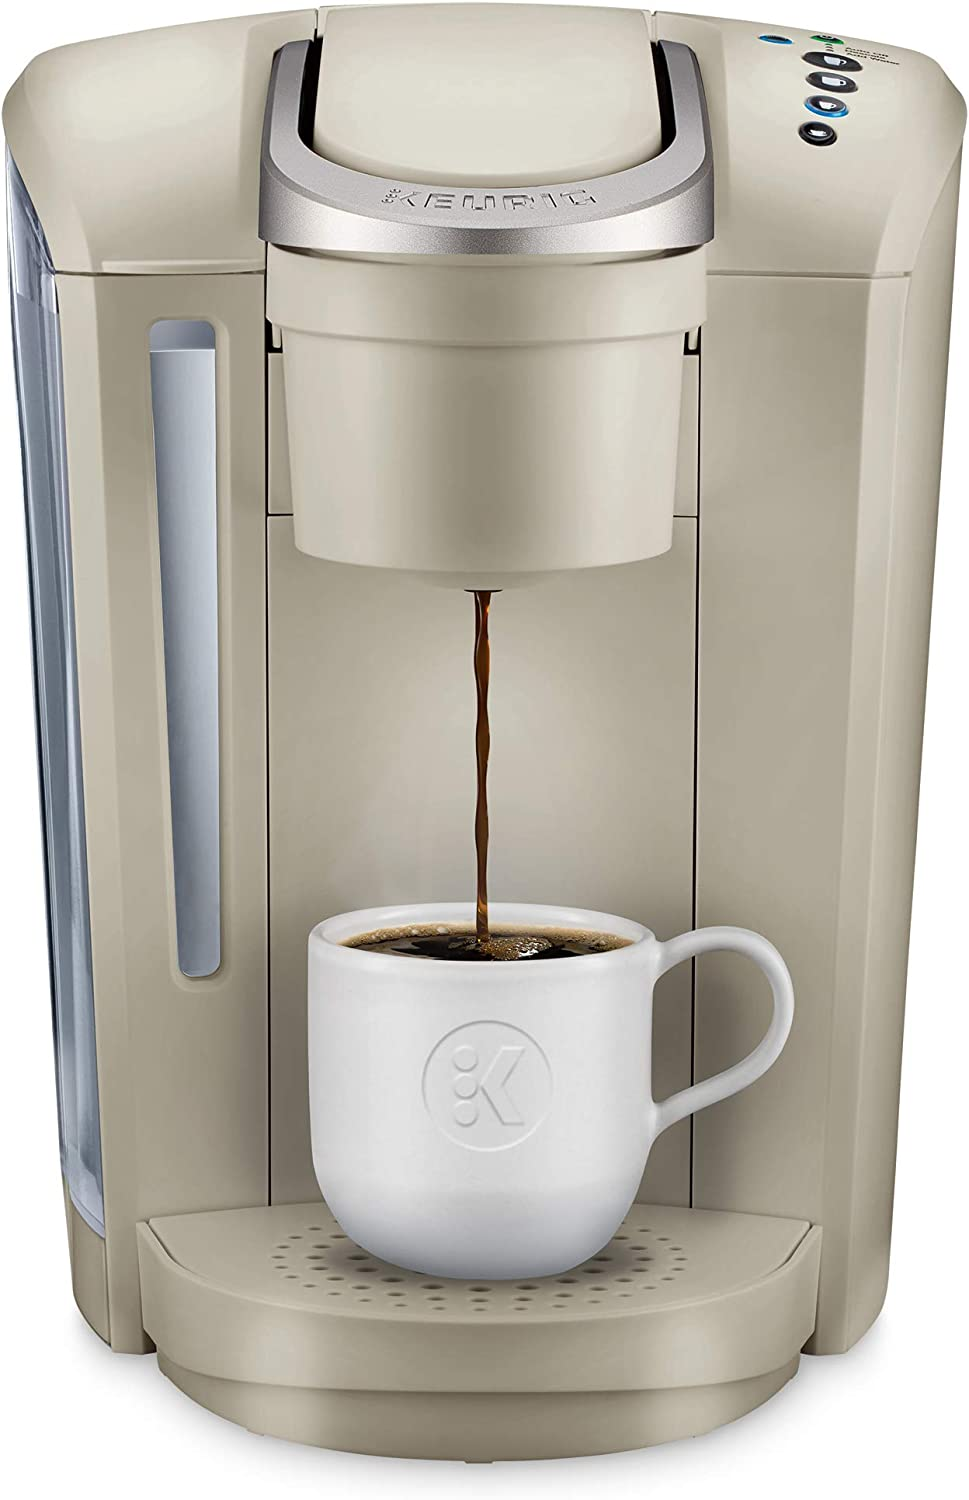 Keurig K-Select Coffee Maker, Single Serve K-Cup Pod Coffee Brewer, With Strength Control and Hot Water On Demand, Sandstone